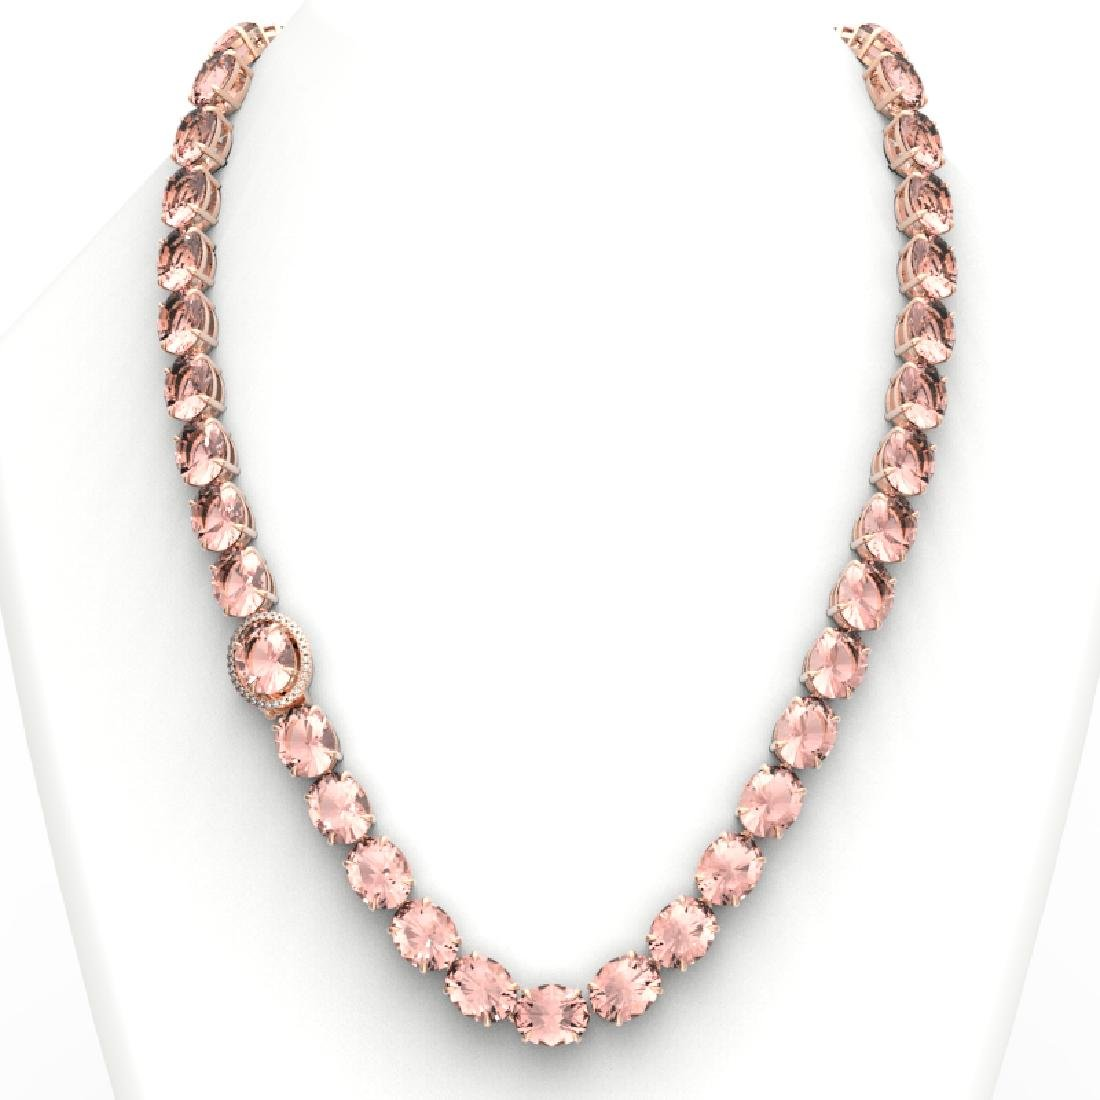 148 CTW Morganite & VS/SI Diamond Pave Necklace 14K - 3